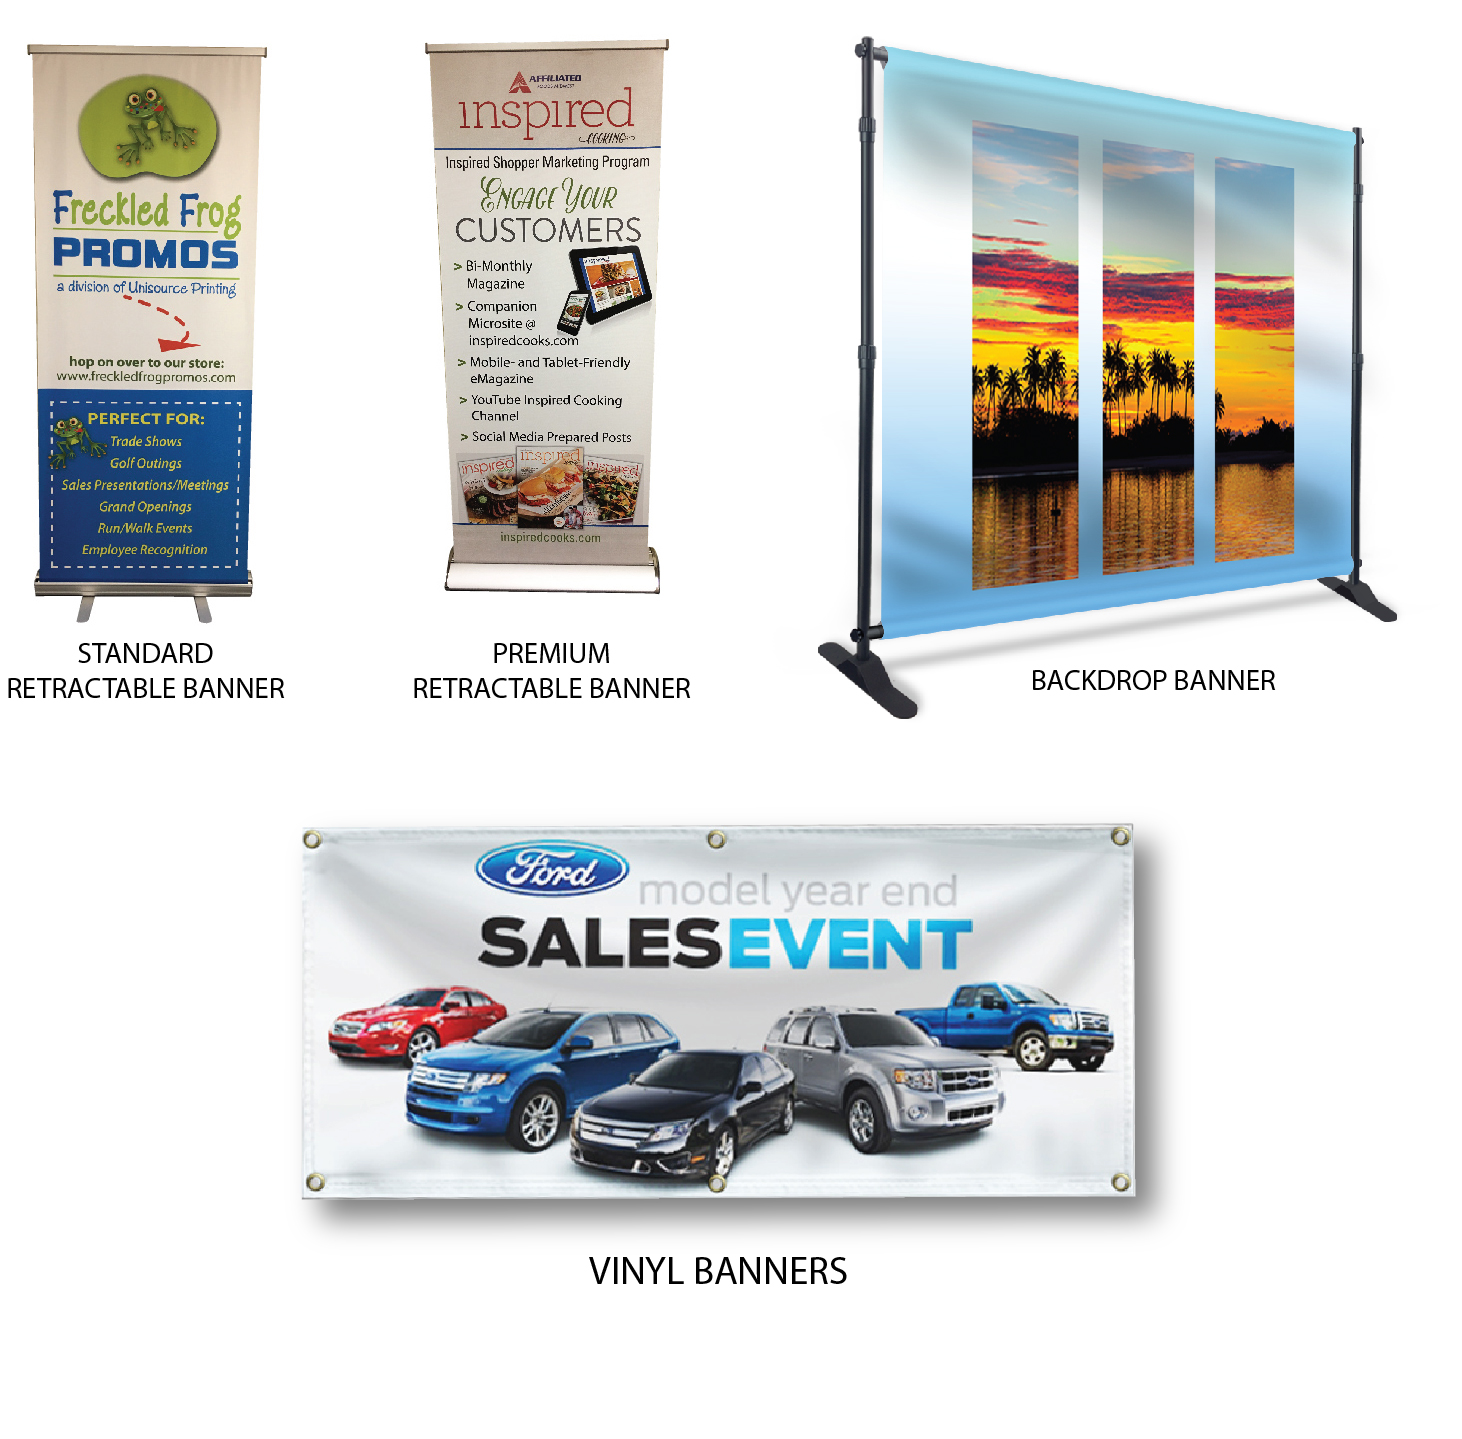 Retractable Banners_Backdrop Banner_Banners